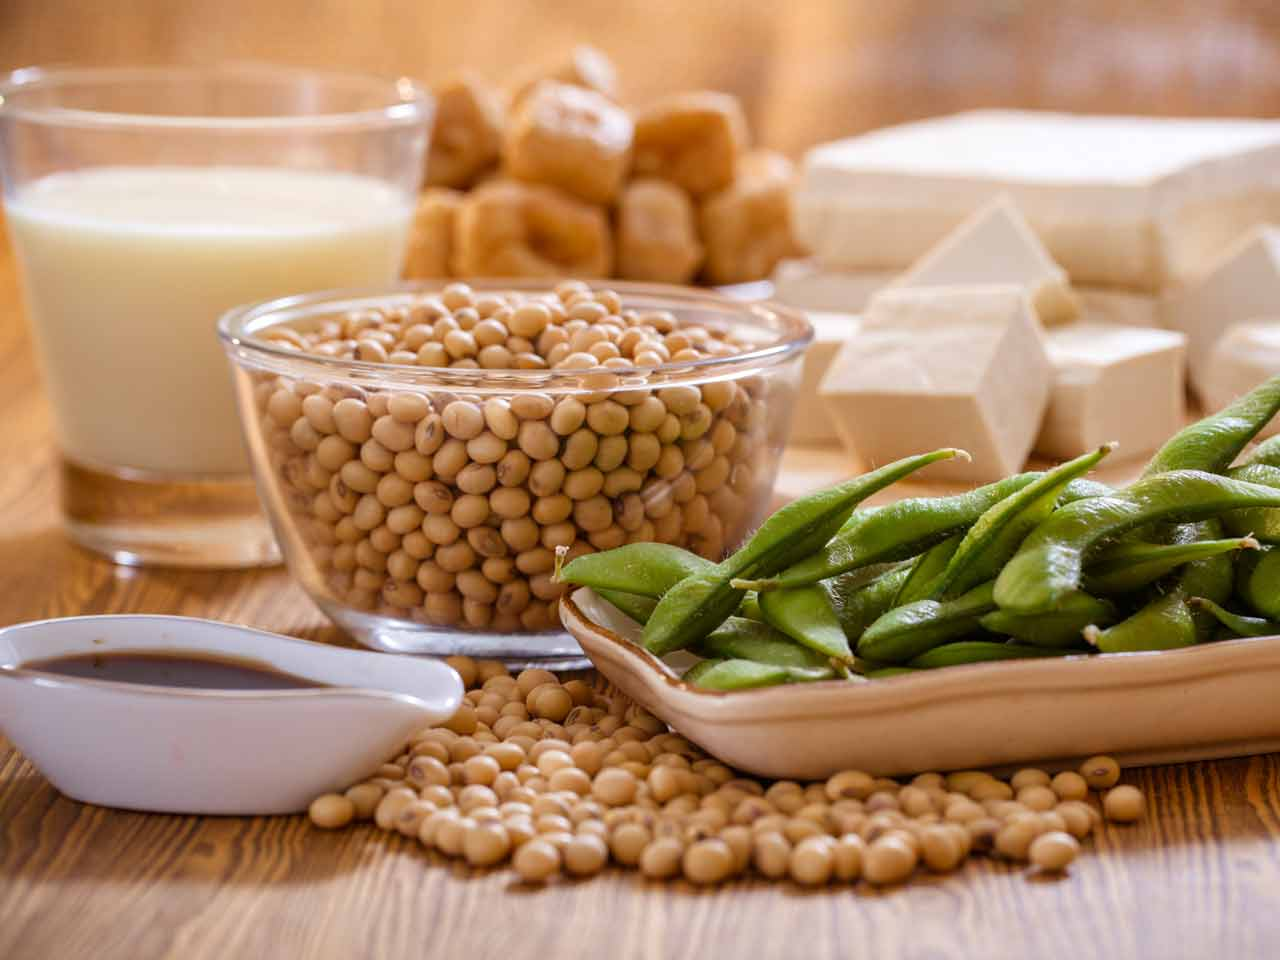 You can naturally increase your oestrogen levels by eating plenty of soya